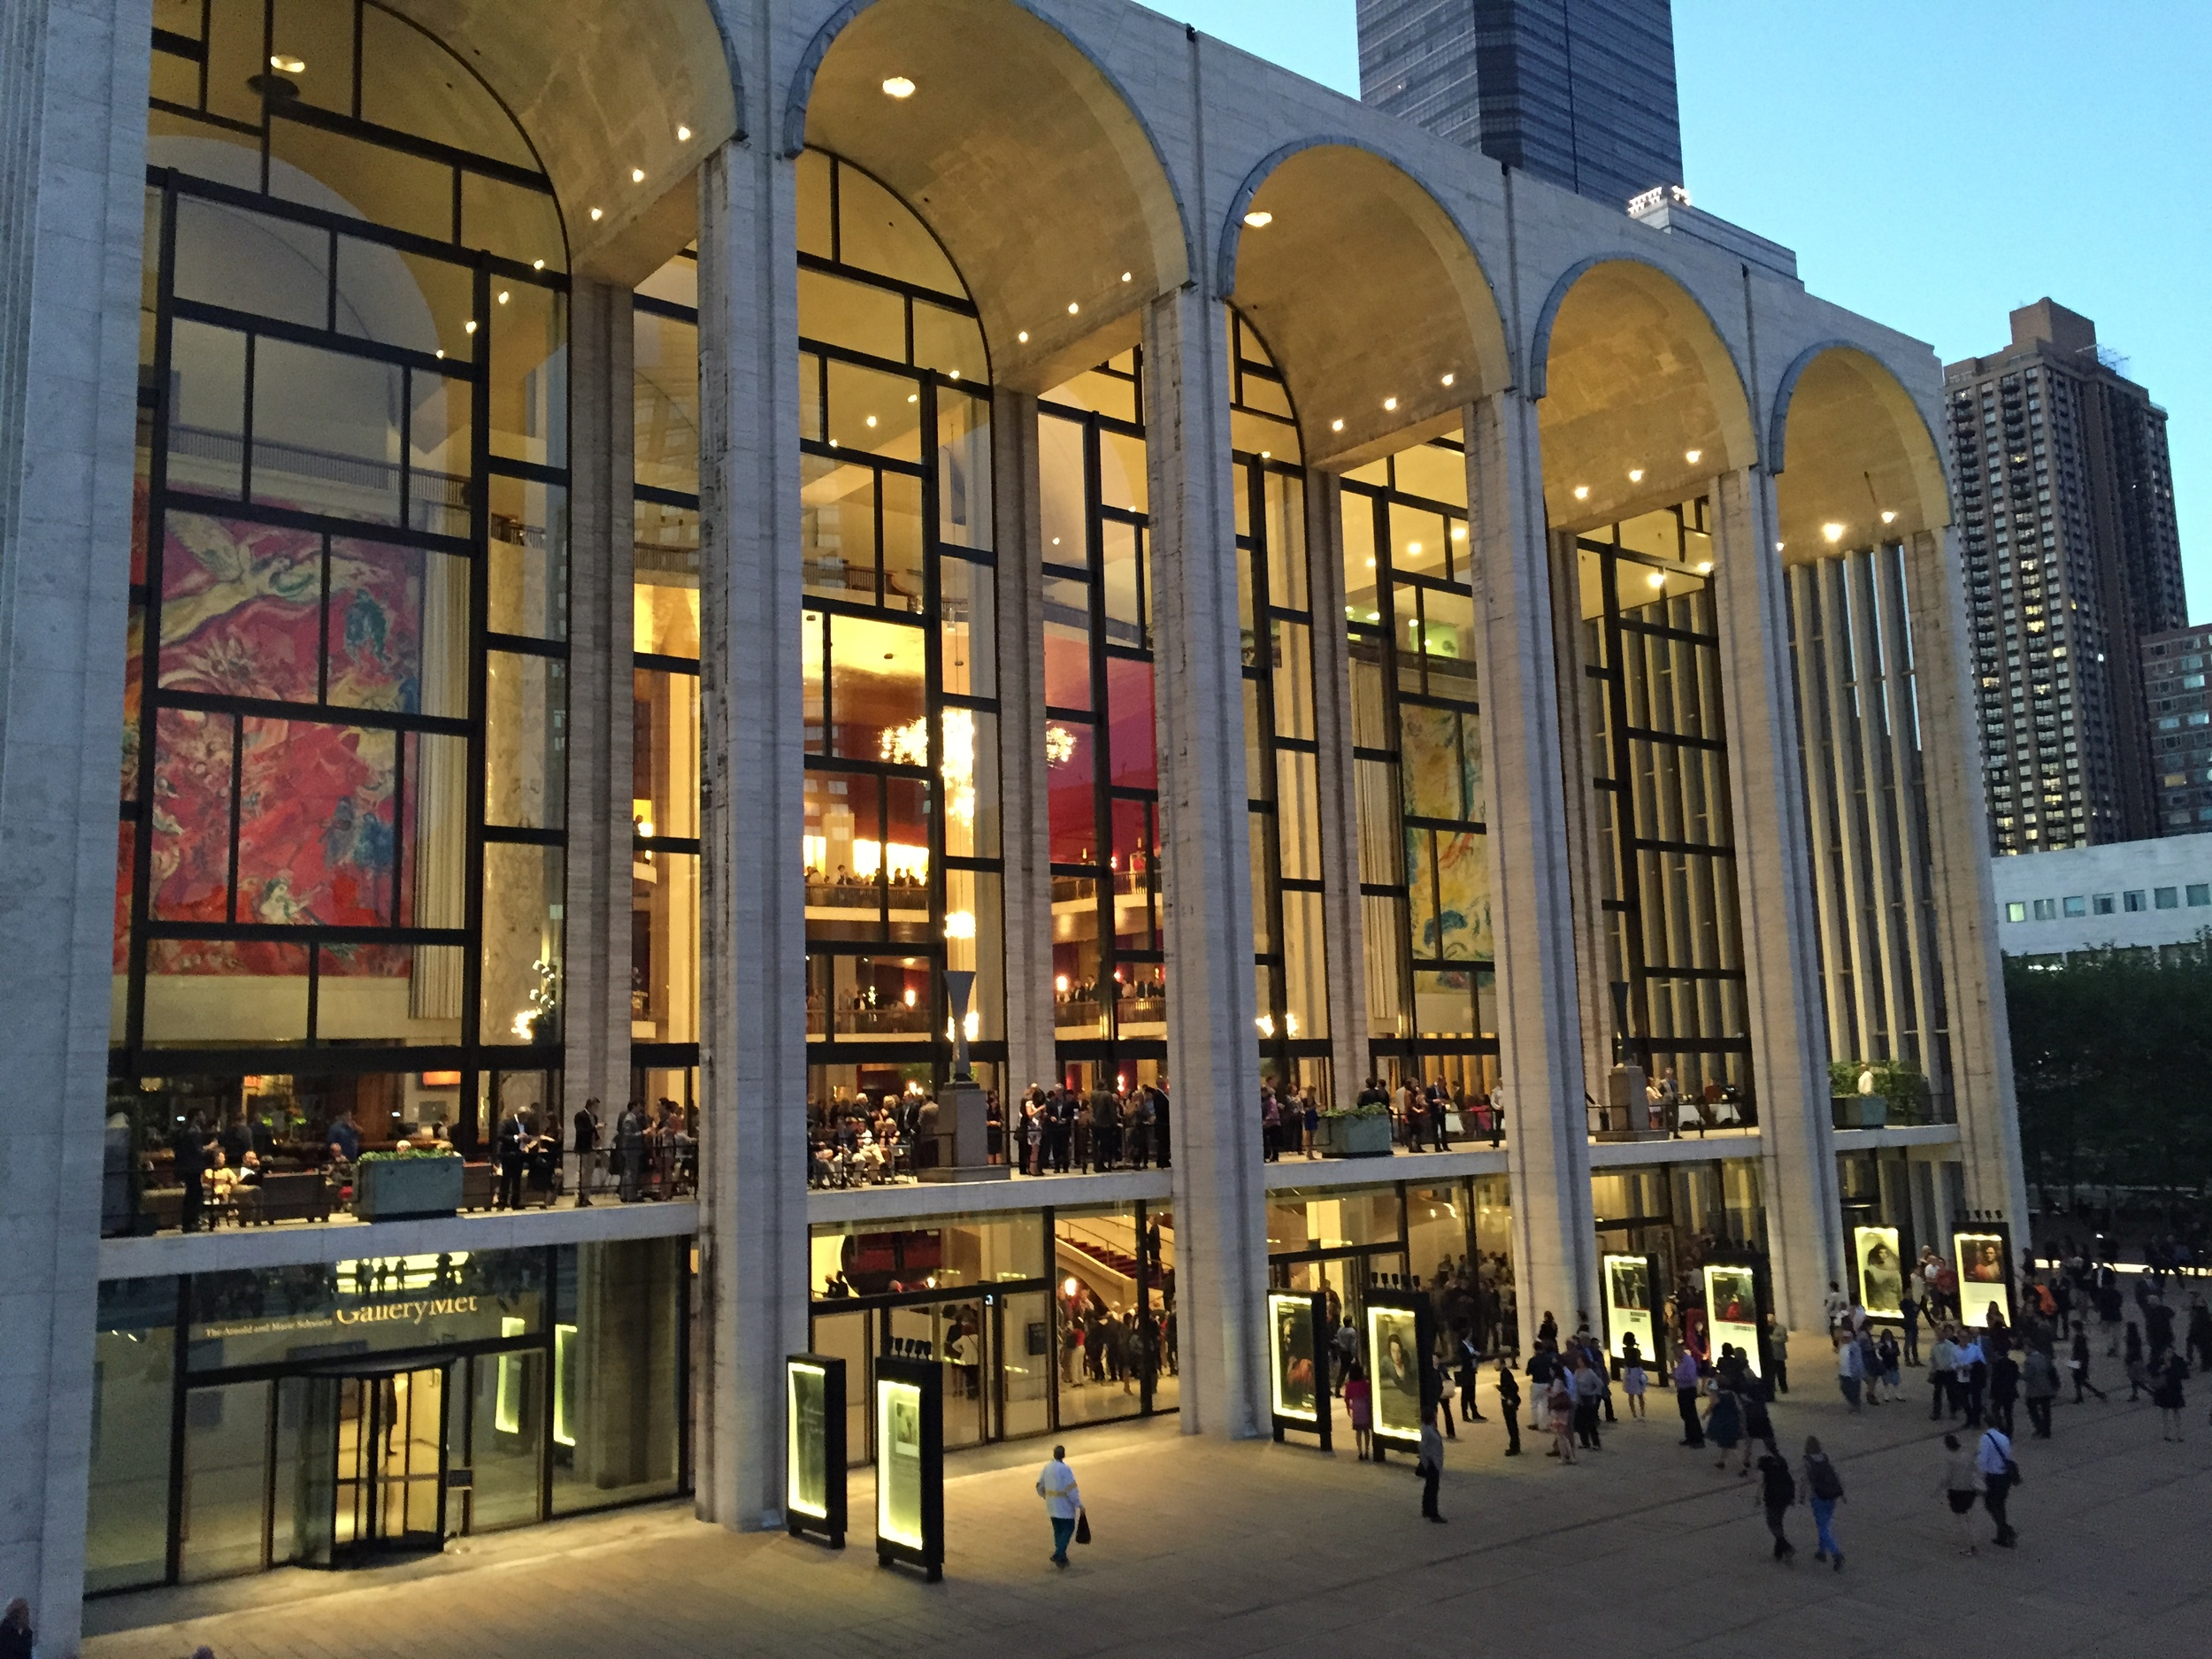 Favorite place, Metropolitan Opera house. Attending 2 performances at week, is that too much?